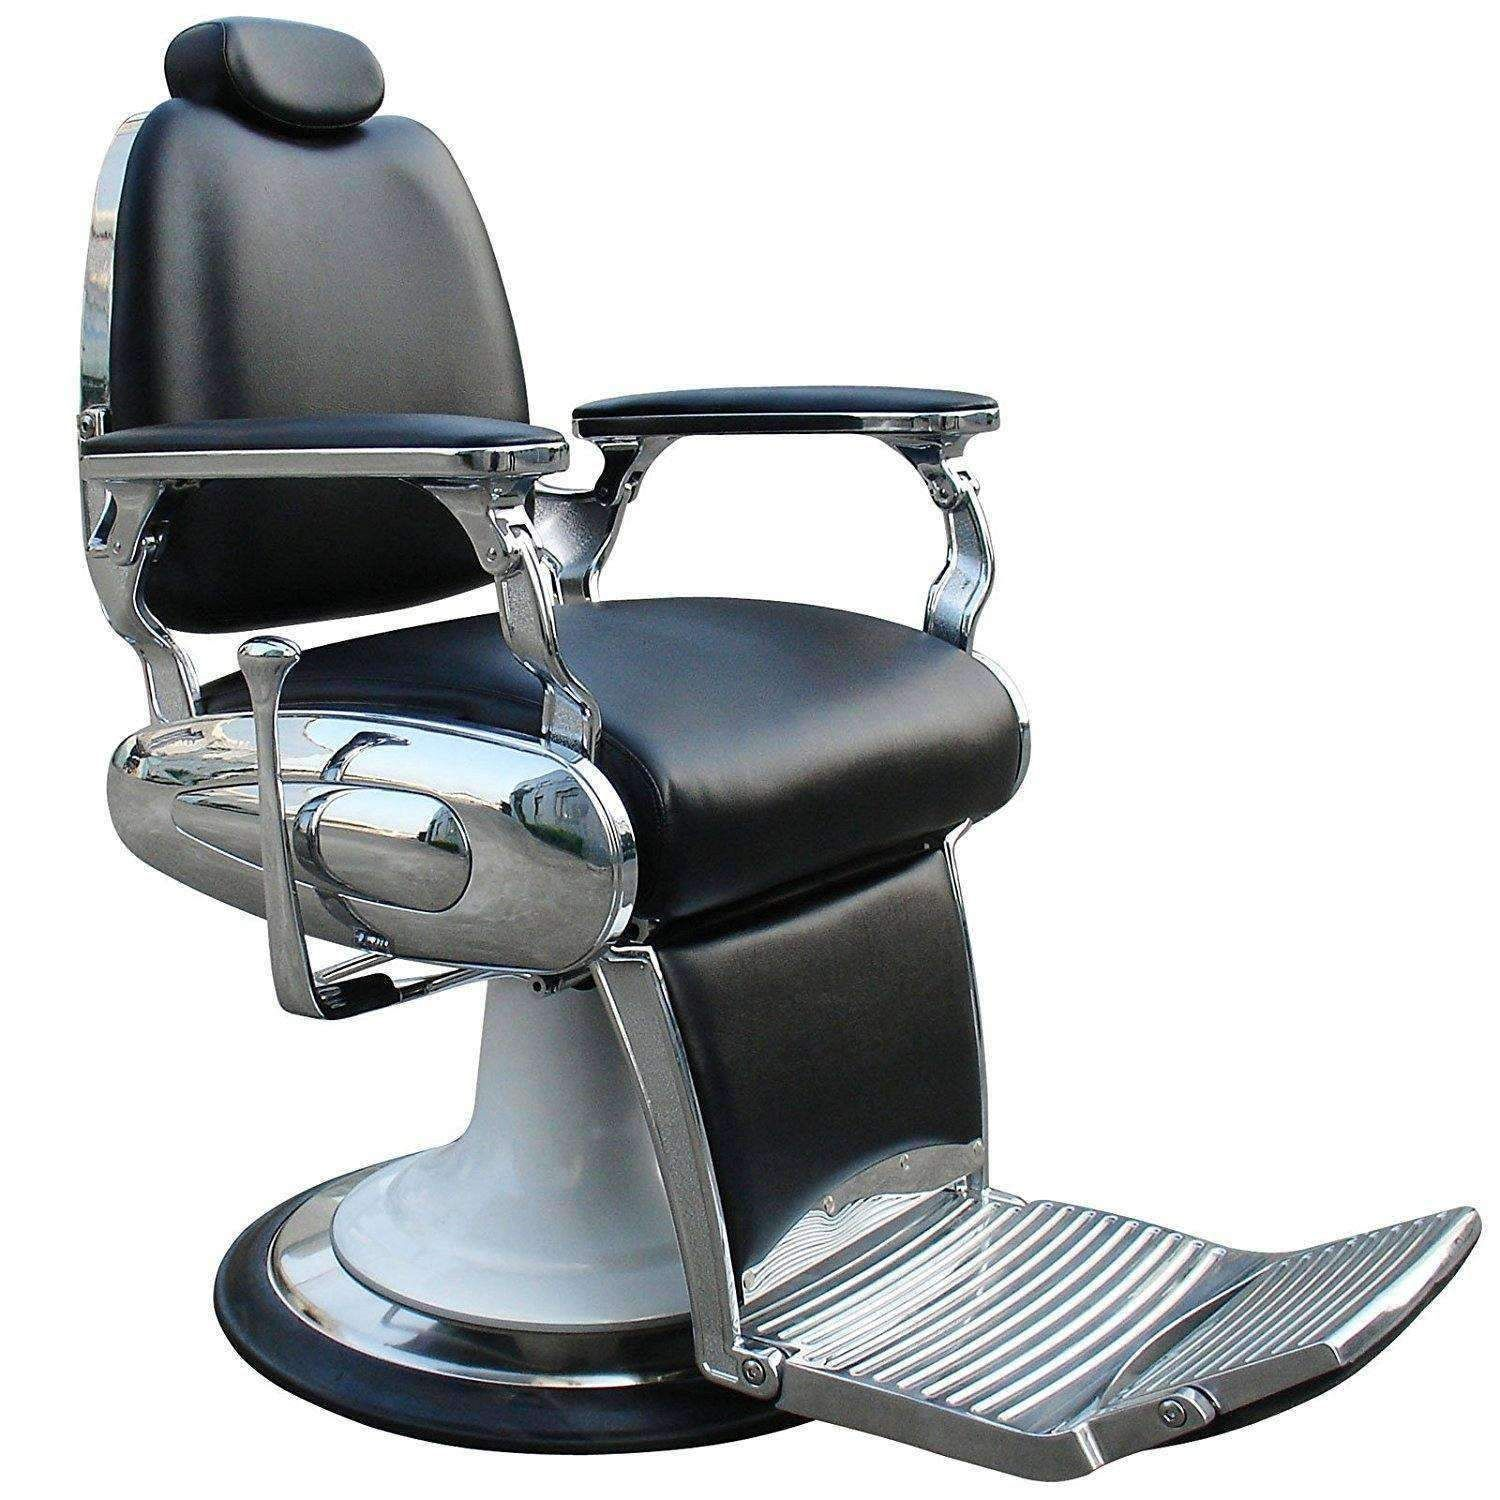 Black Barber Chair With Heavy Duty Base And Chrome Frames Barber Chair Barber Shop Chairs Barber